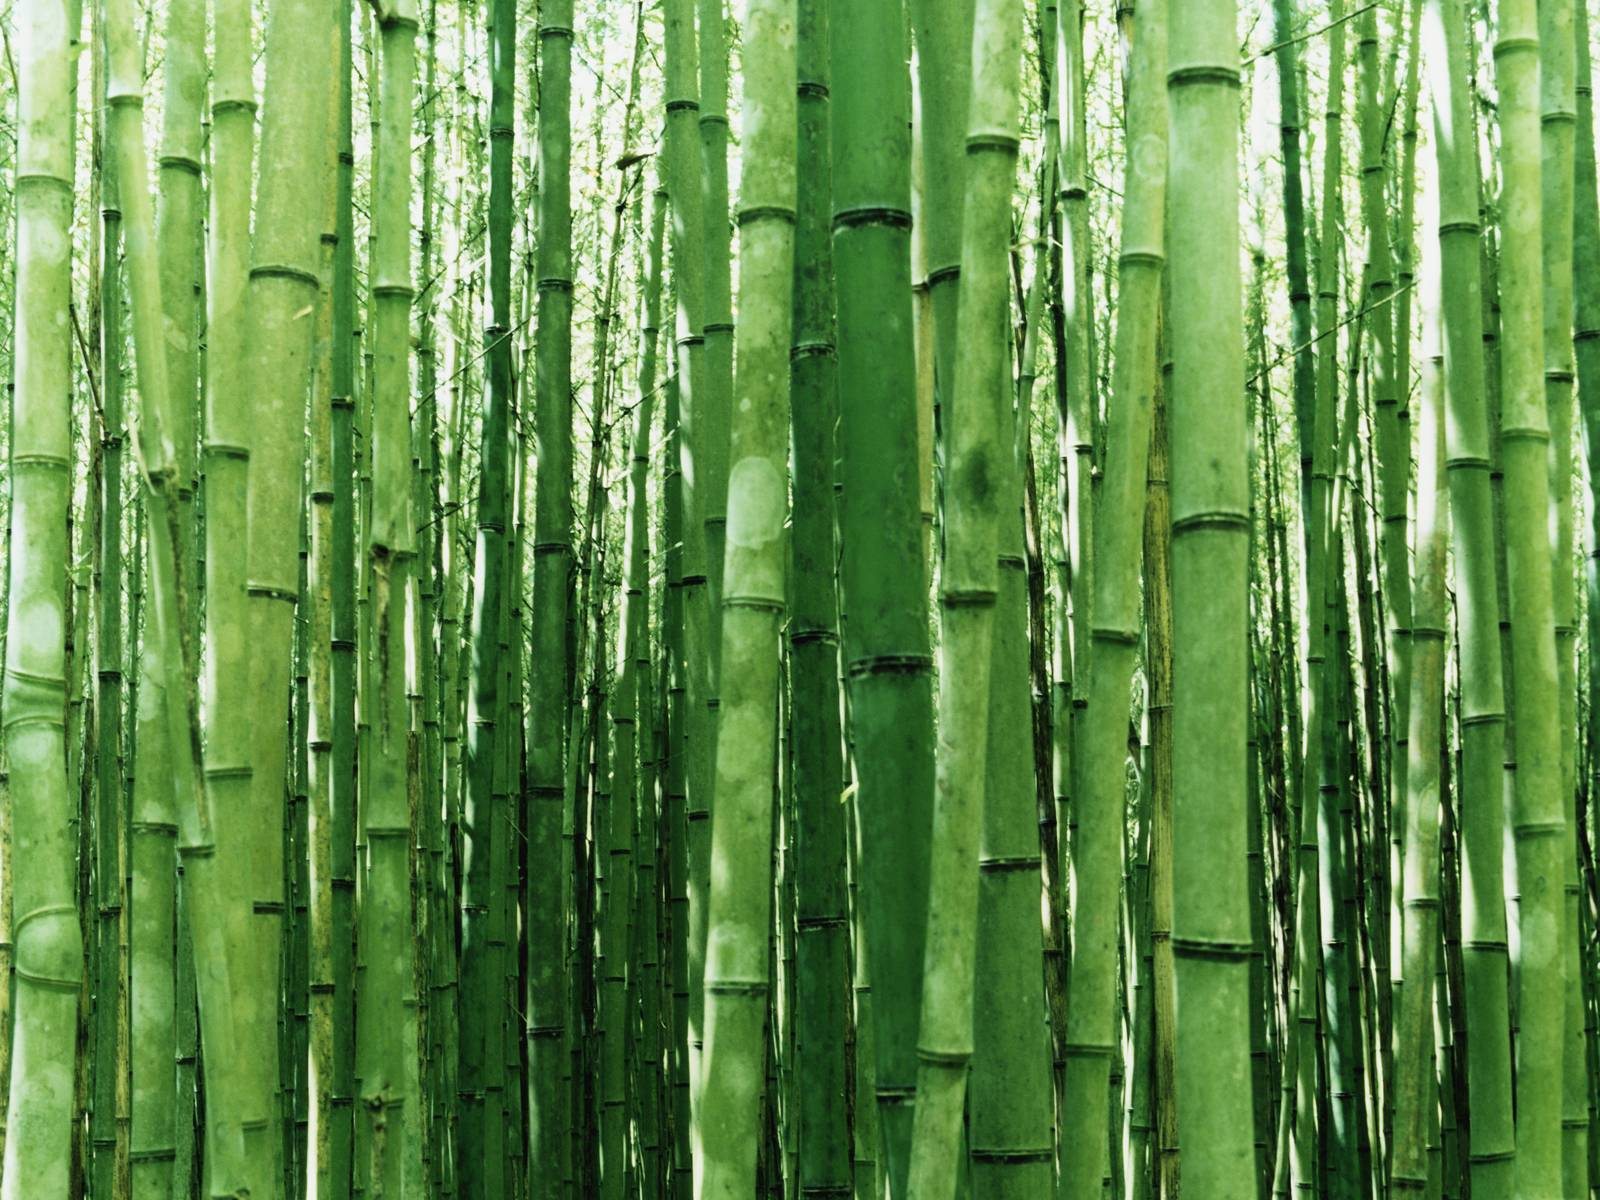 Vista Wallpapers – Textures » Vista Wallpaper Bamboo